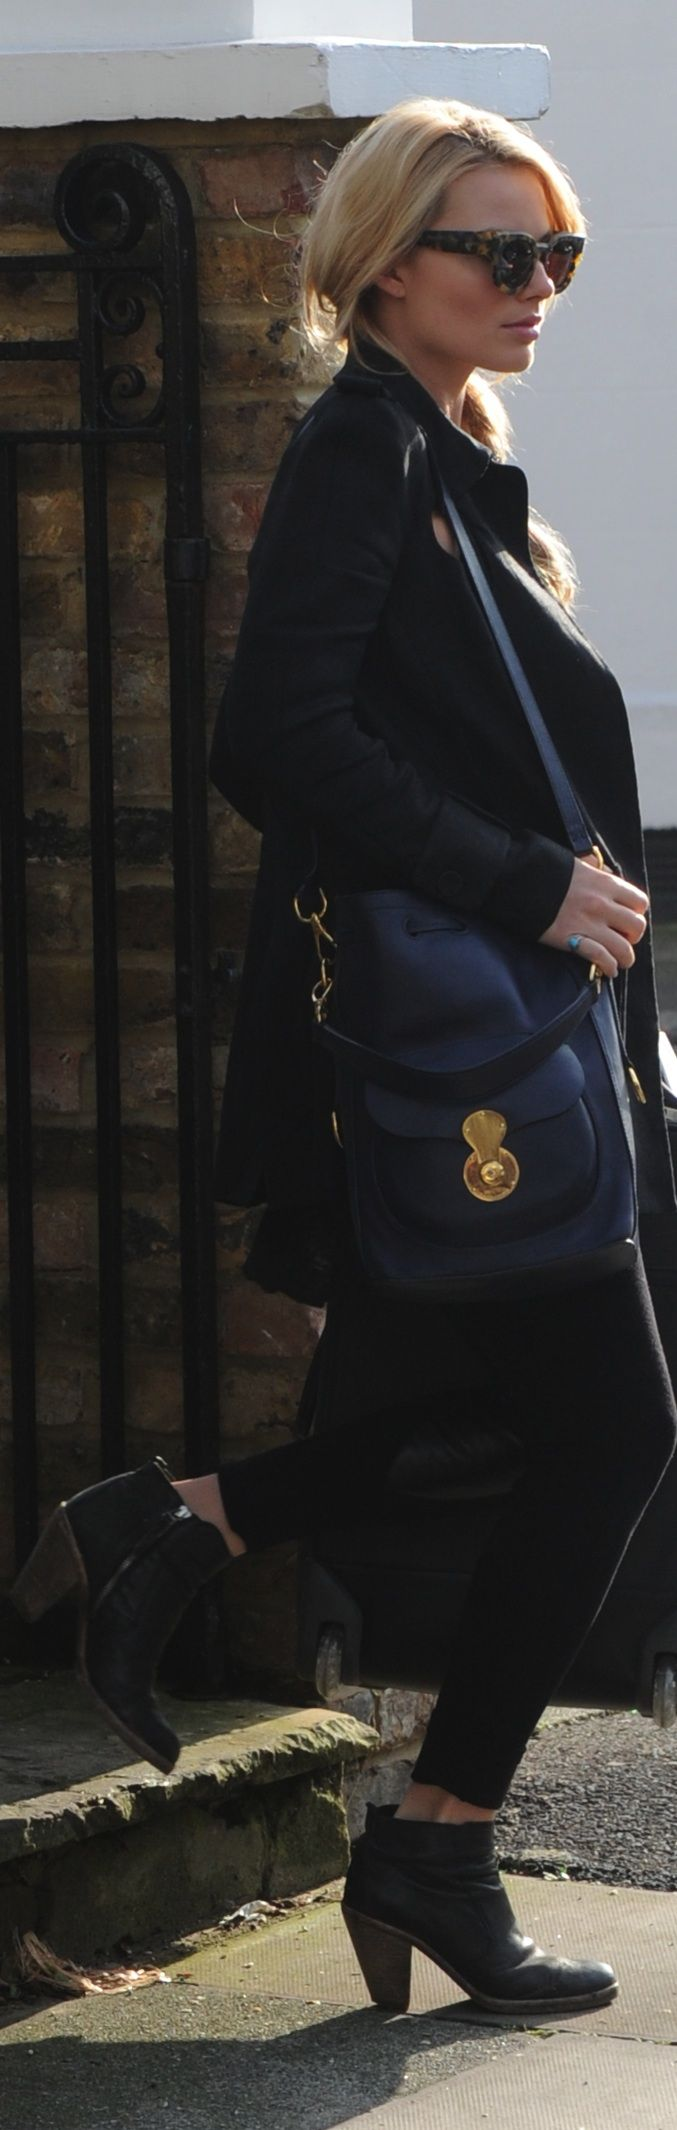 Actress Margot Robbie seen out and about with the Ralph Lauren Drawstring Ricky Bag